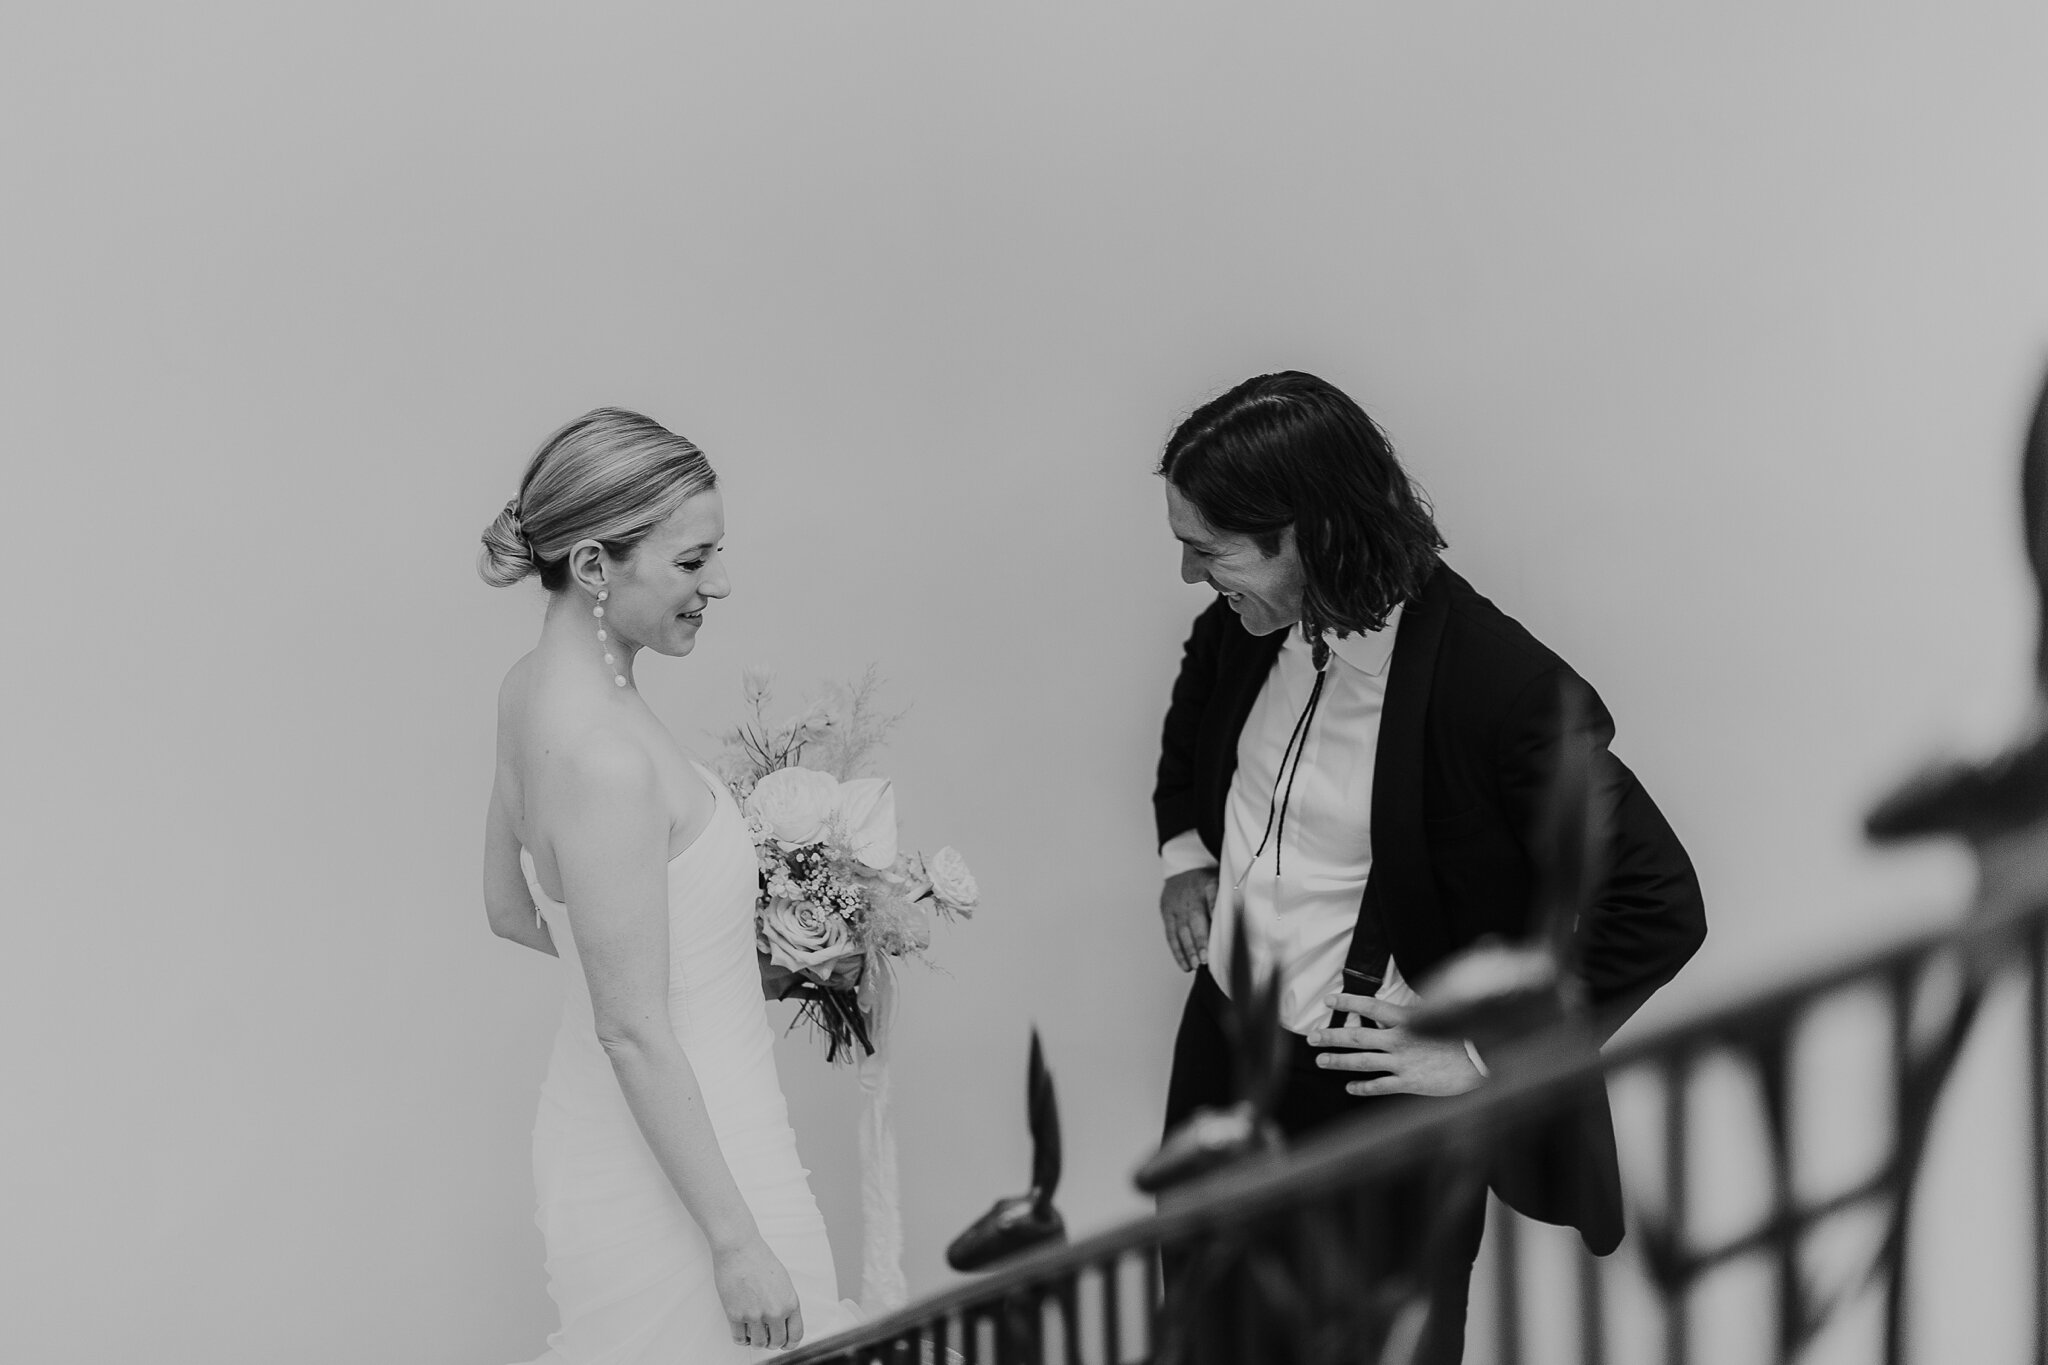 Alicia+lucia+photography+-+albuquerque+wedding+photographer+-+santa+fe+wedding+photography+-+new+mexico+wedding+photographer+-+new+mexico+wedding+-+la+fonda+wedding+-+la+fonda+on+the+plaza+-+santa+fe+wedding+-+brooklyn+bride_0031.jpg